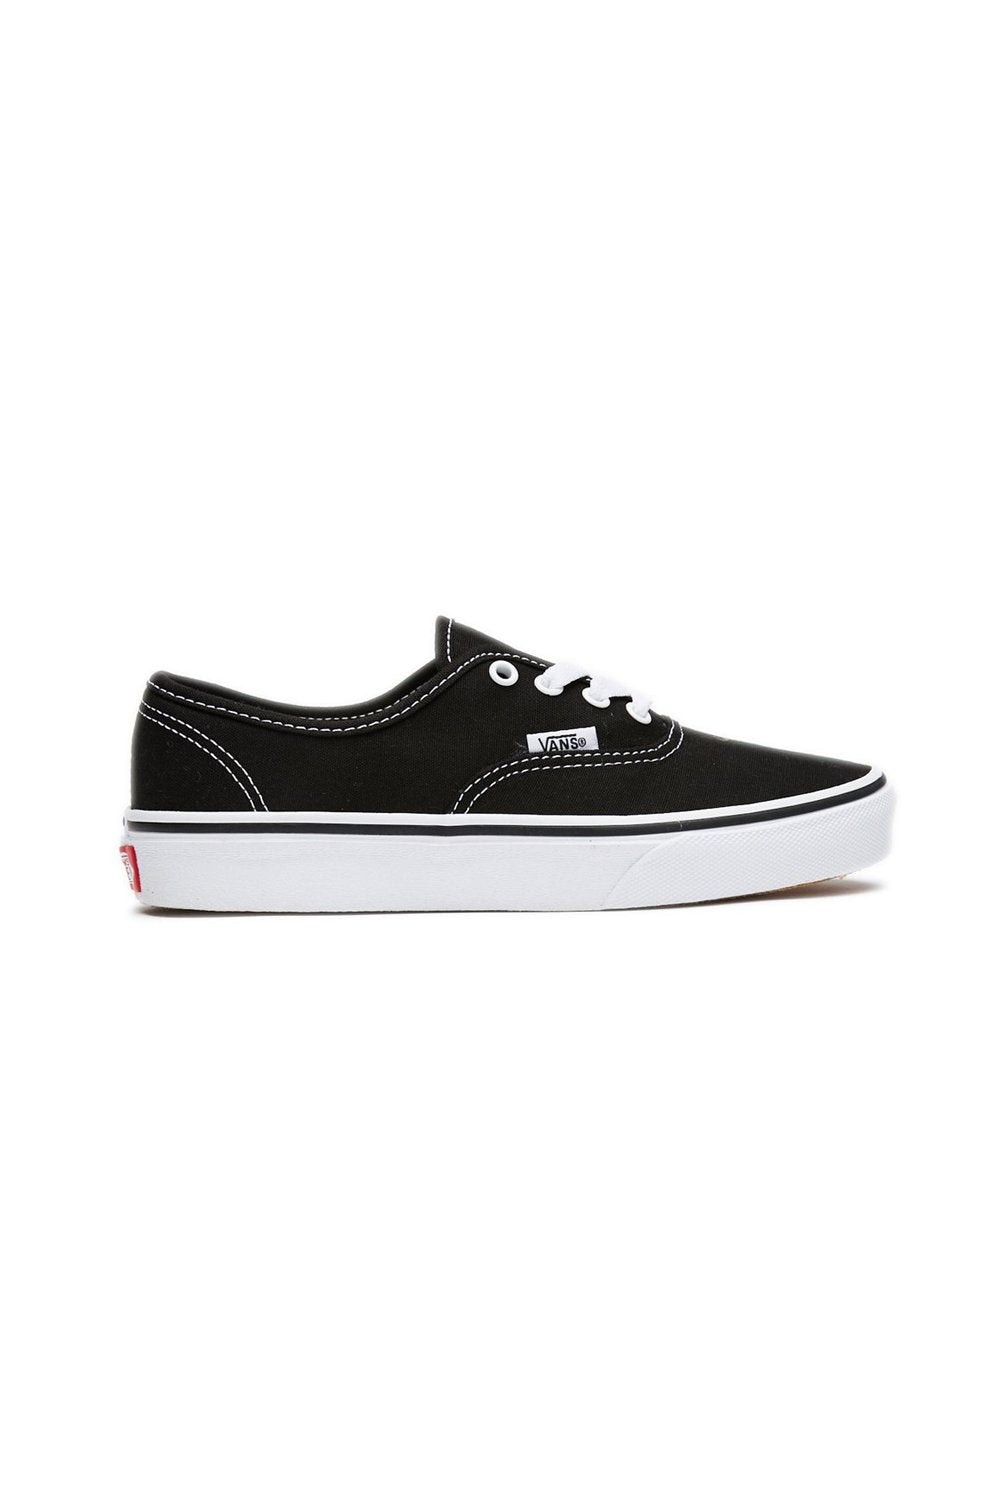 Vans Authentic Kids Black / White Shoe